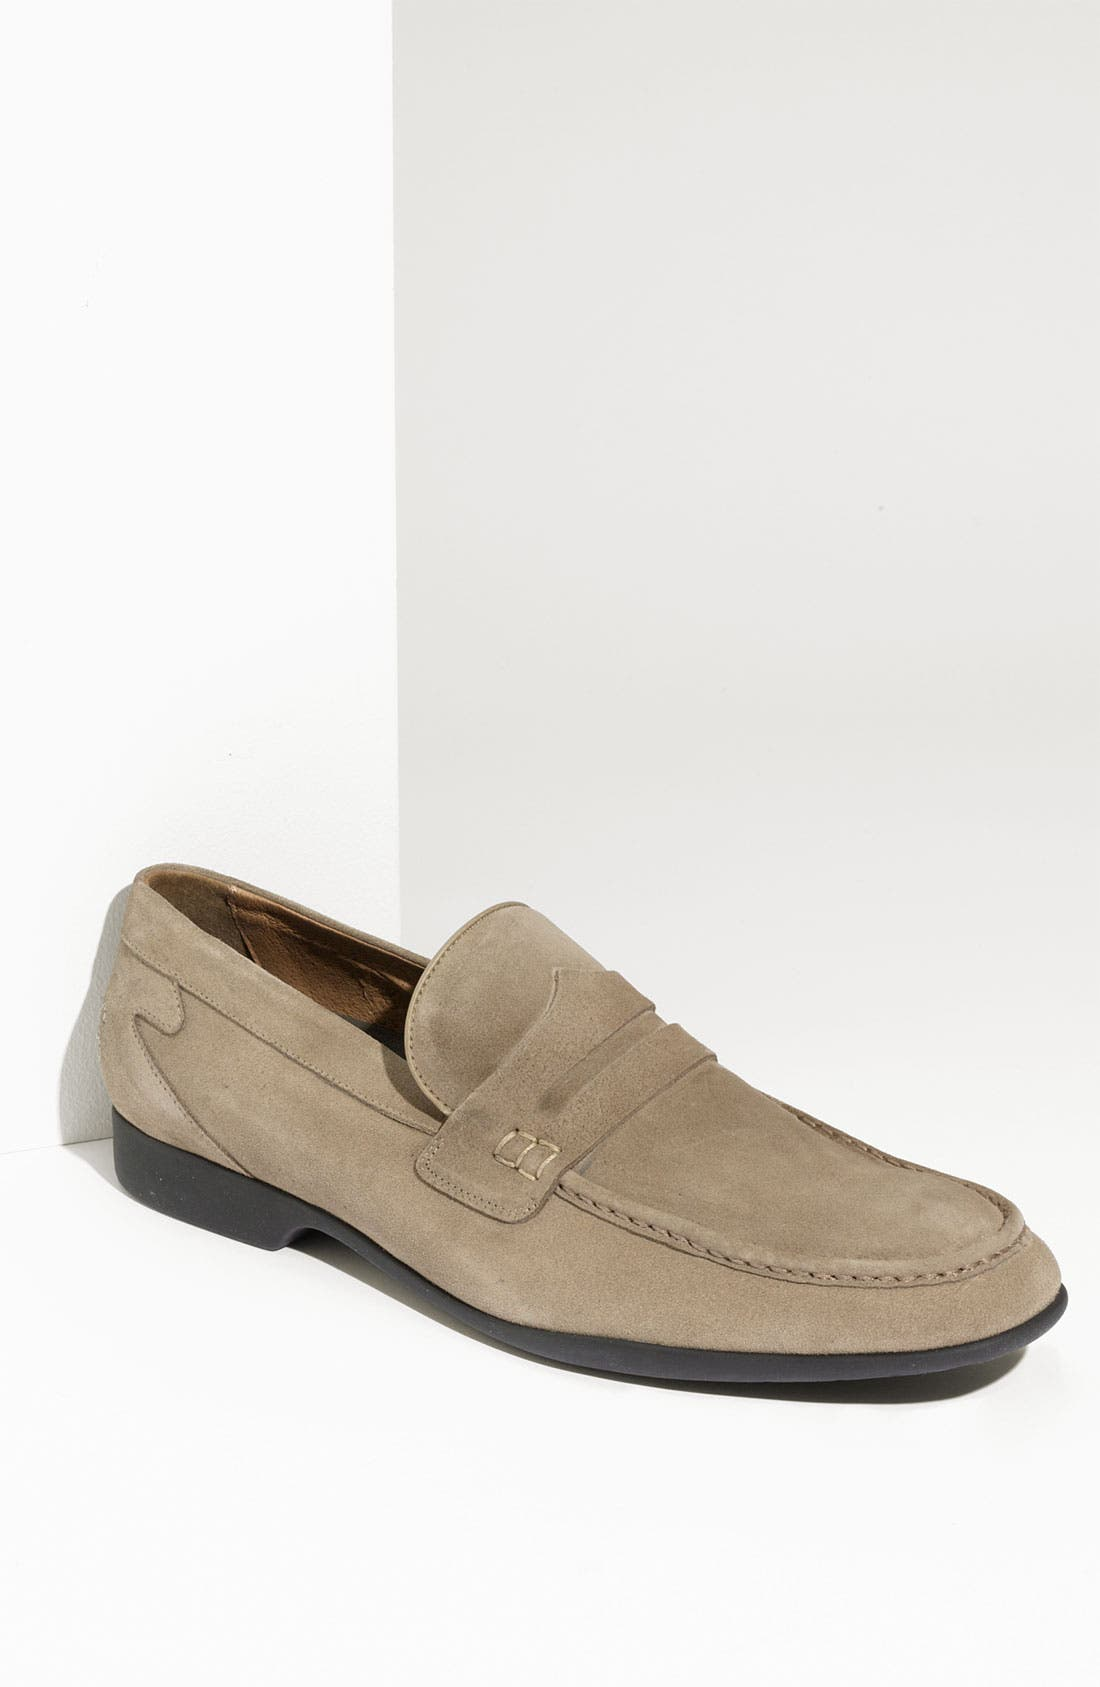 Main Image - Oliver Sweeney 'Mclean' Travel Loafer